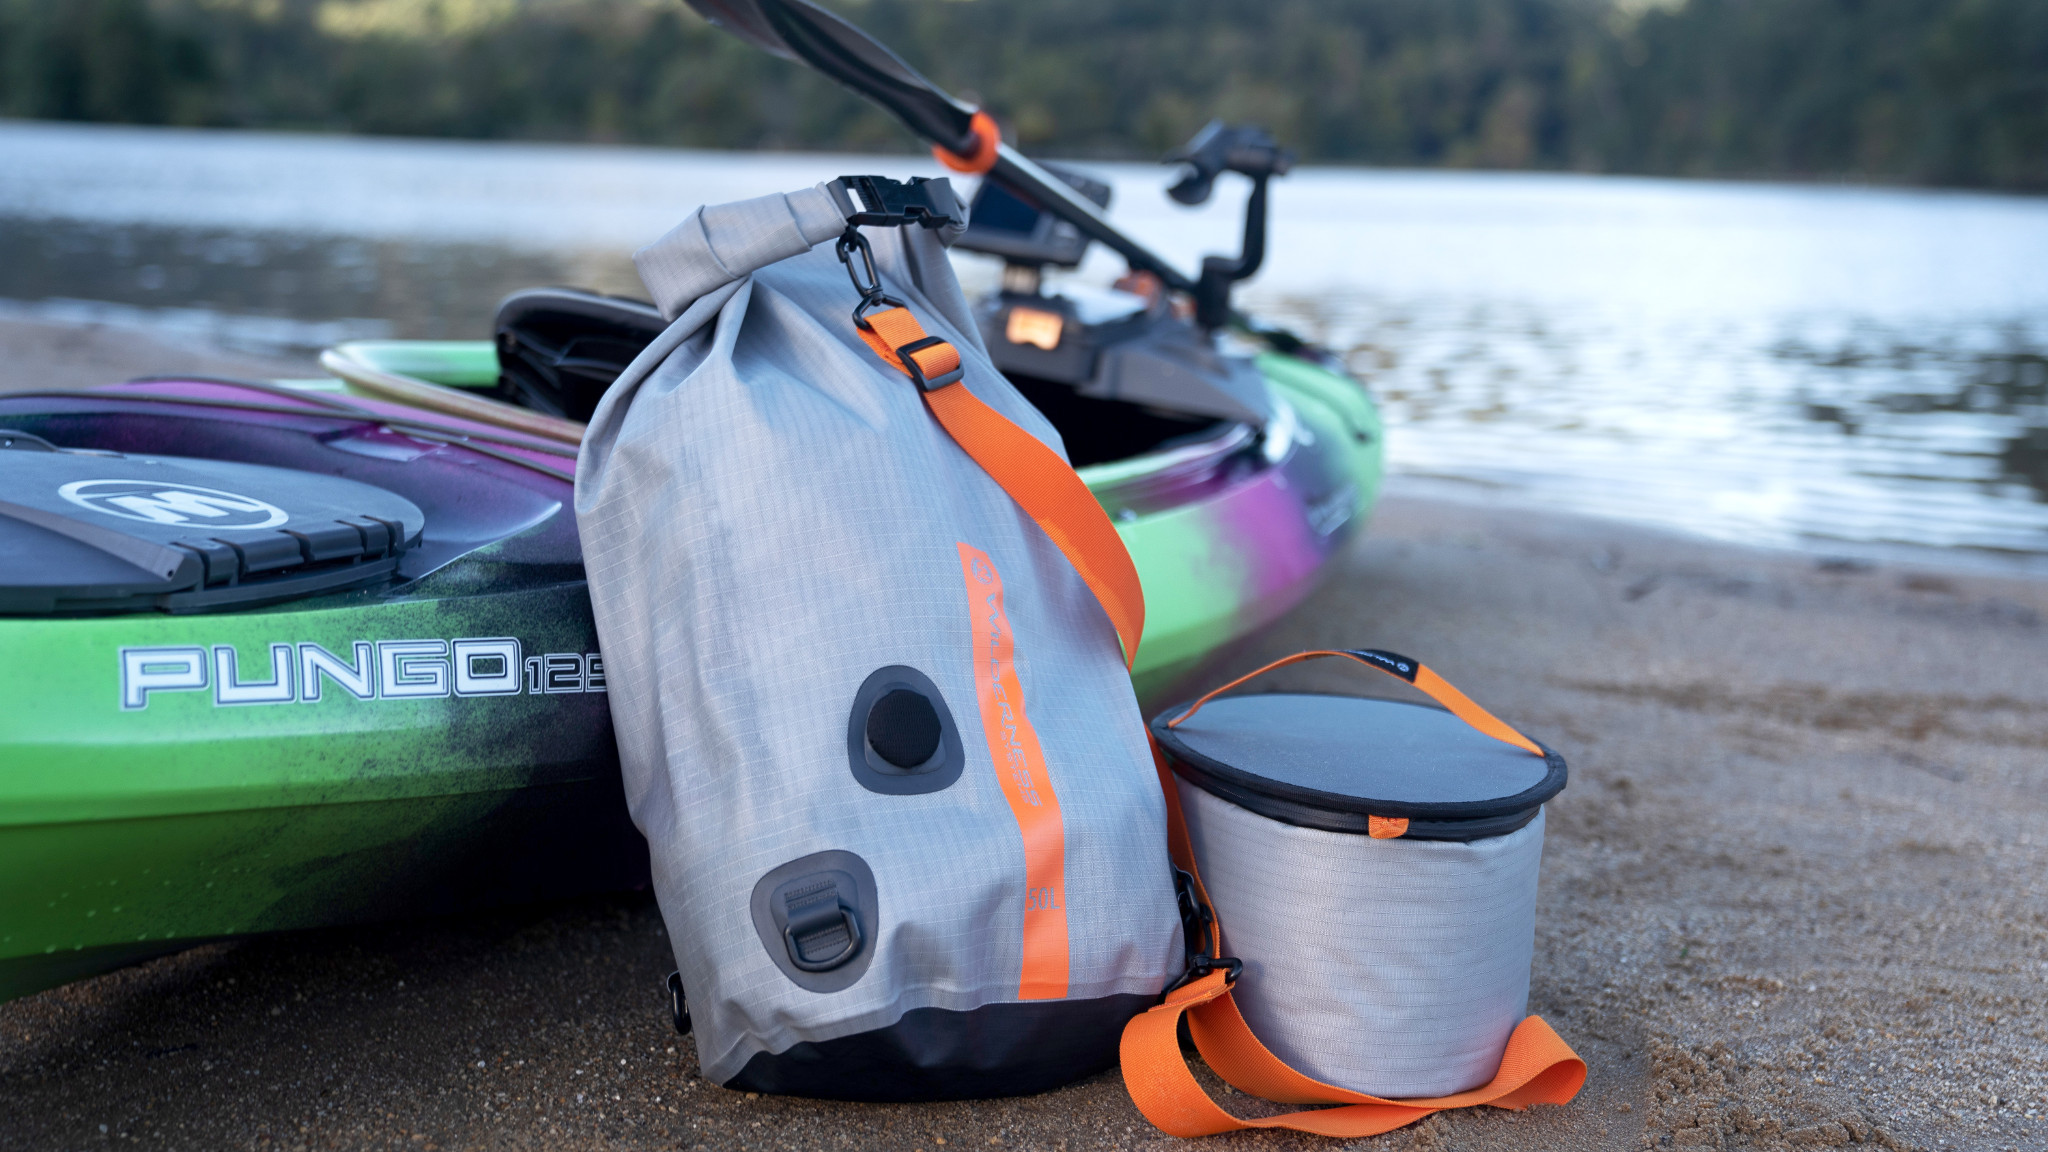 PHOTO: Confluence Watersports